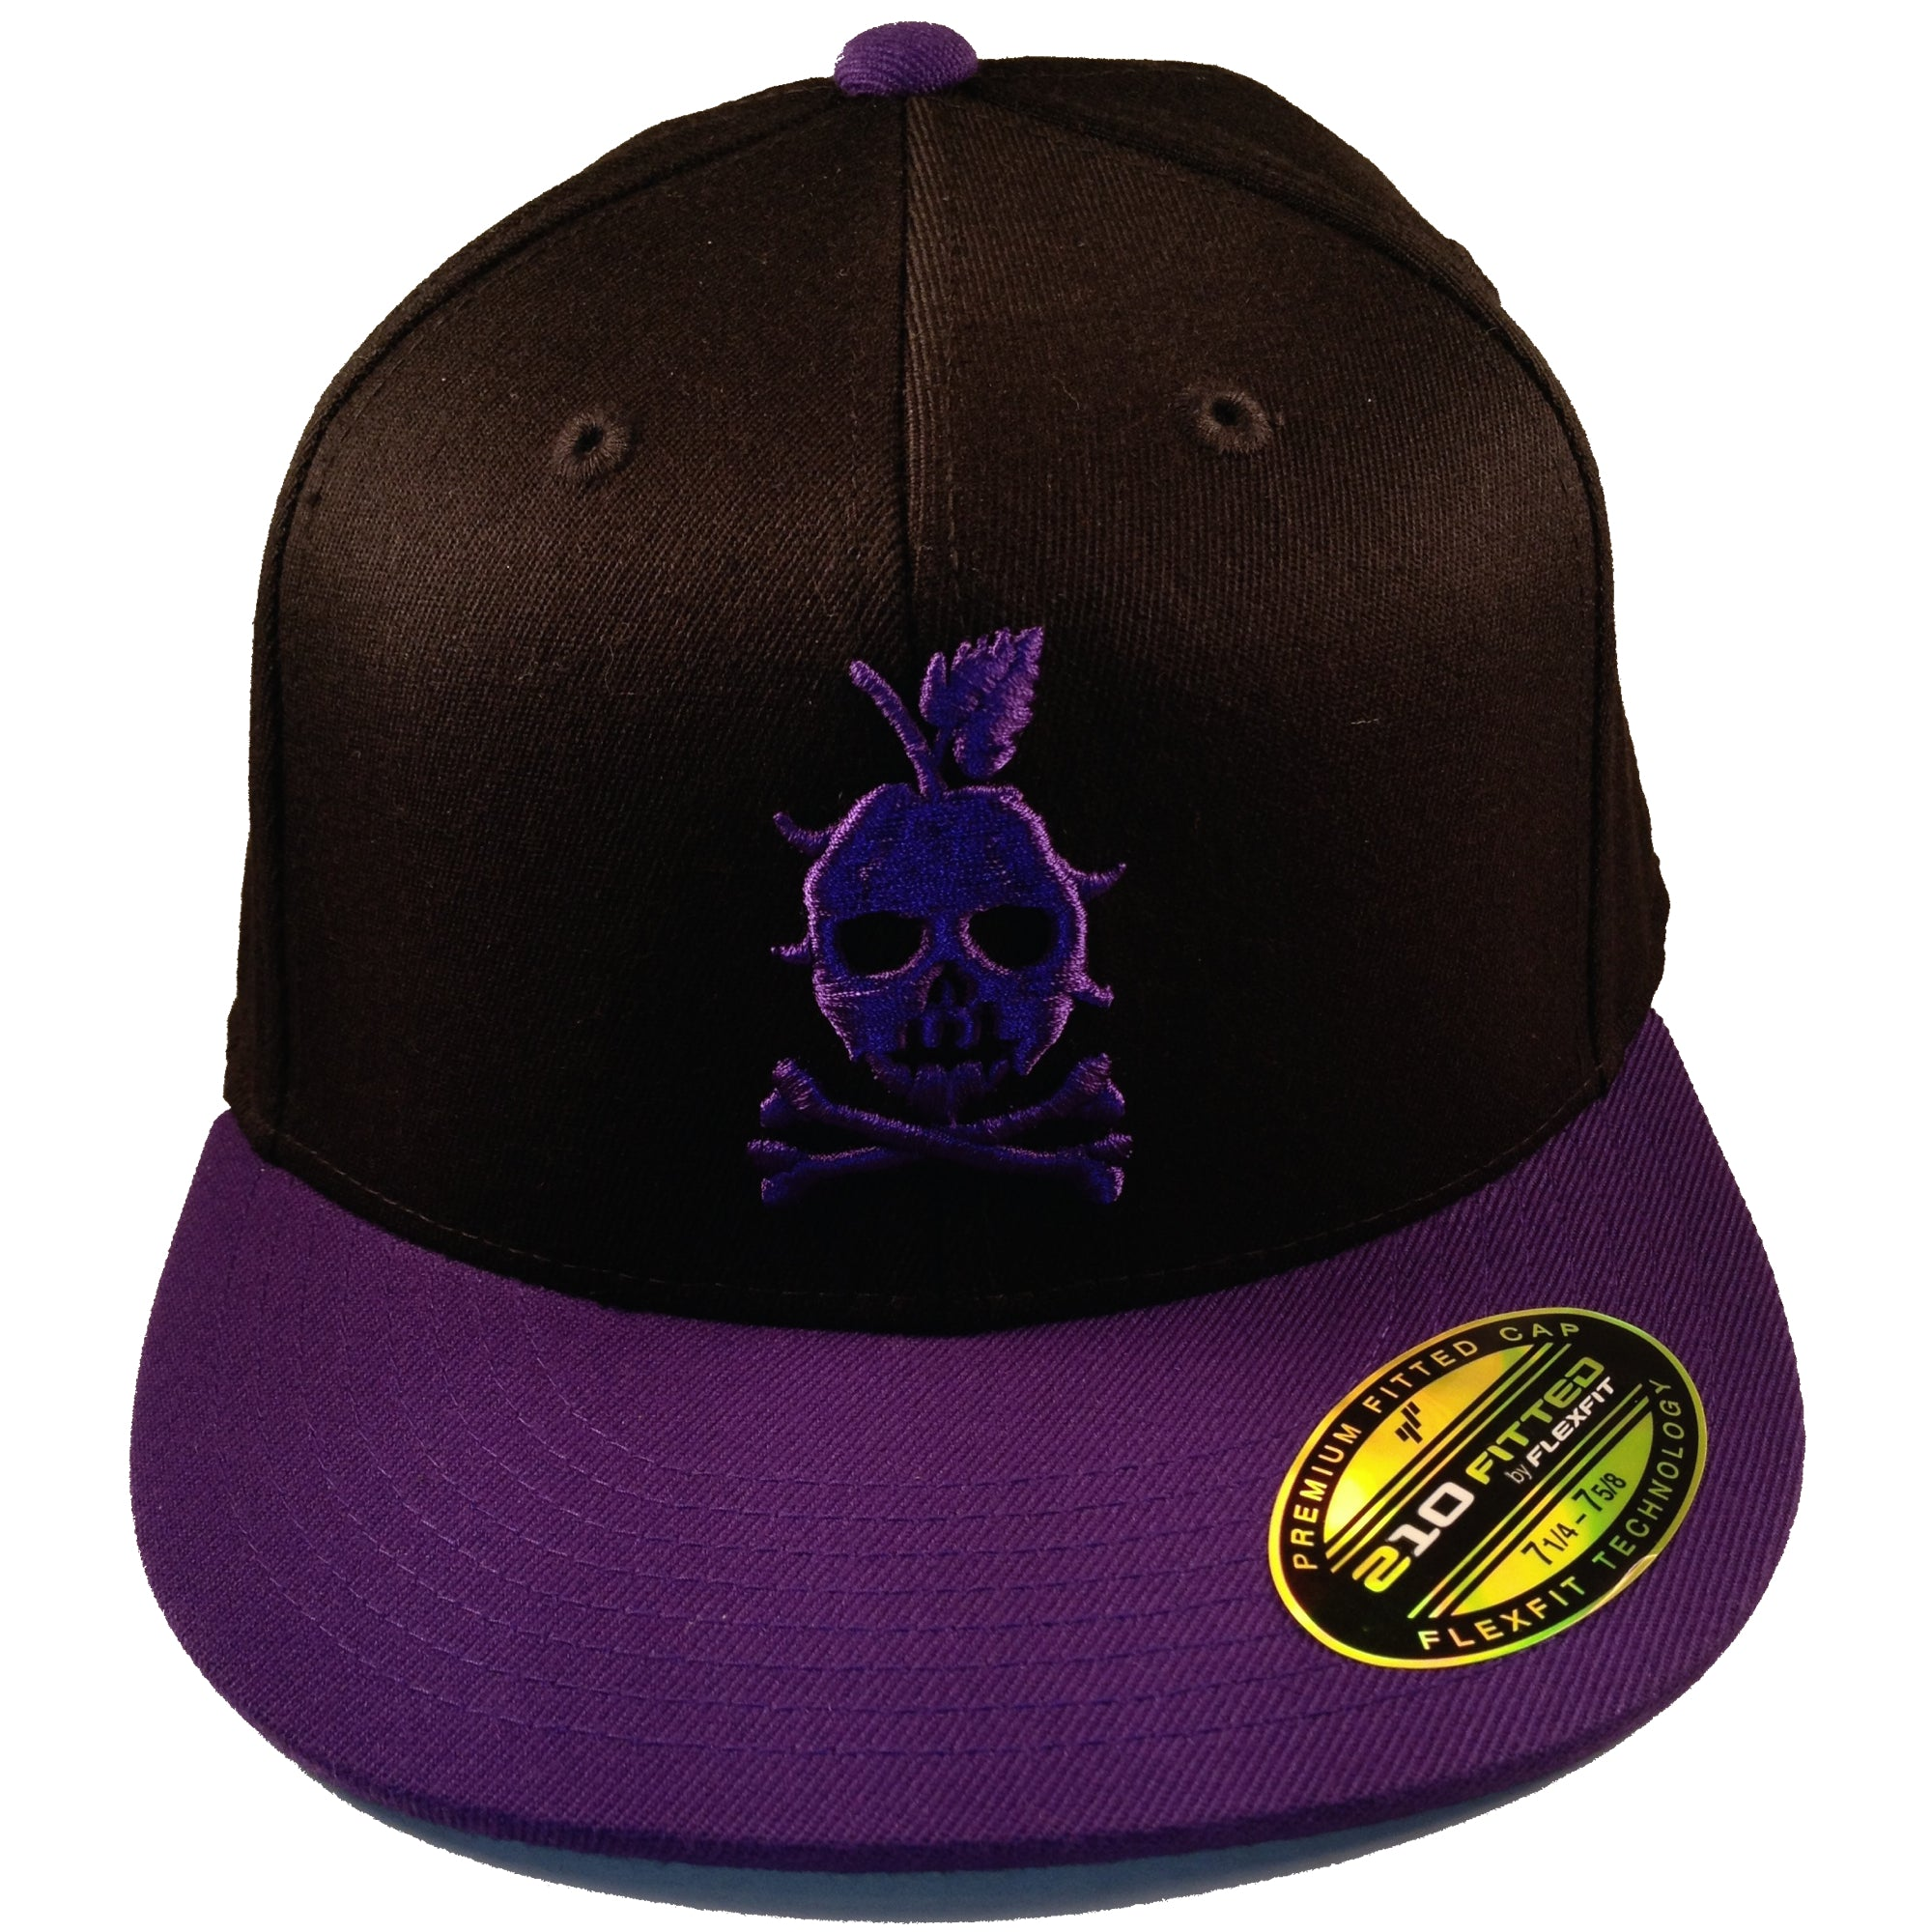 THE LOCAL CAP (Black and Purple)